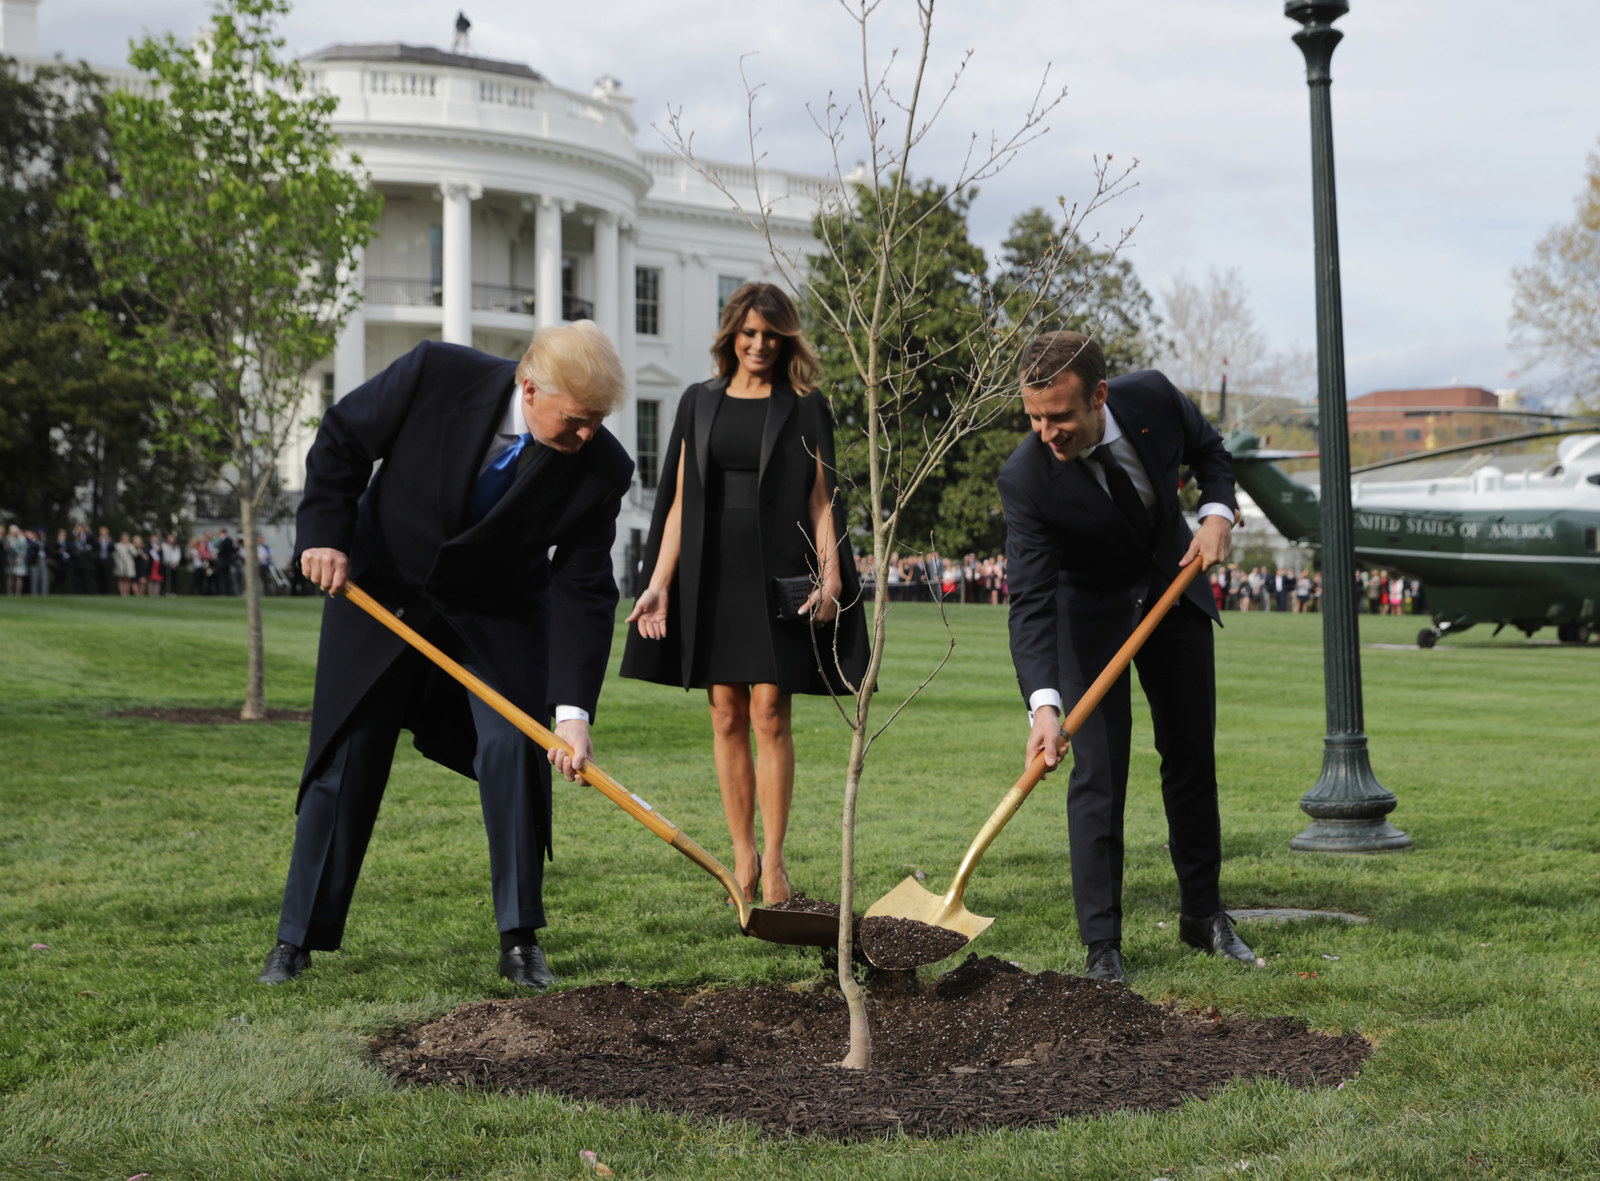 President Trump, Melania, and French President Emmanuel Macron in a tree-planting ceremony on the South Lawn of the White House on April 23.